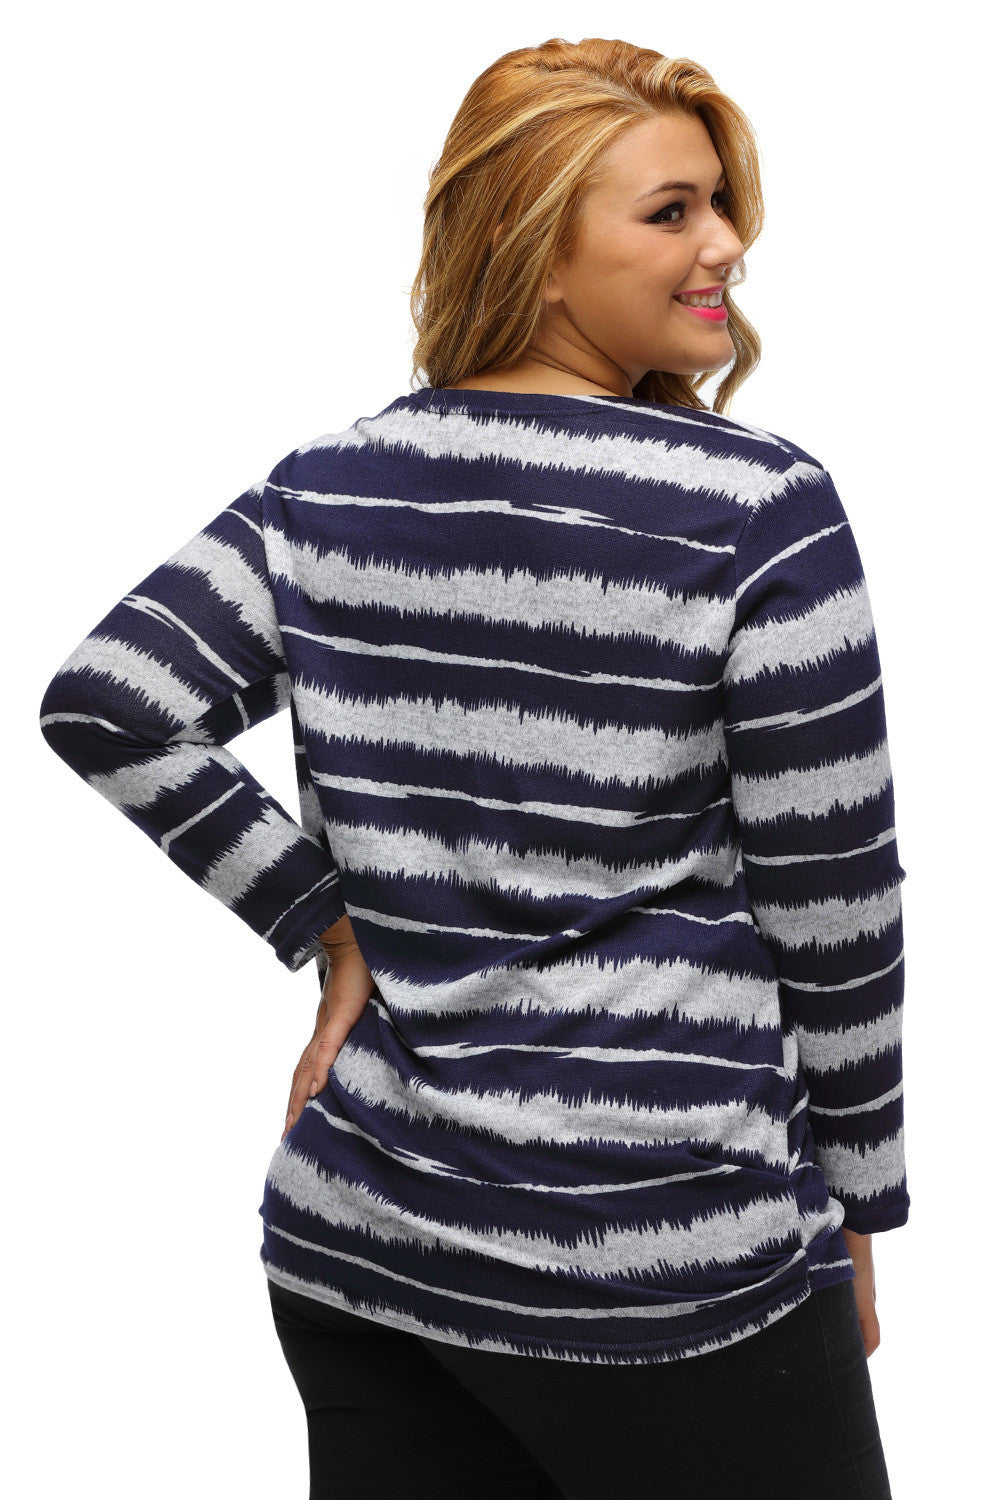 Her Go-To Shirt Navy Embellished Tie-Dye Stripe Plus Size Top